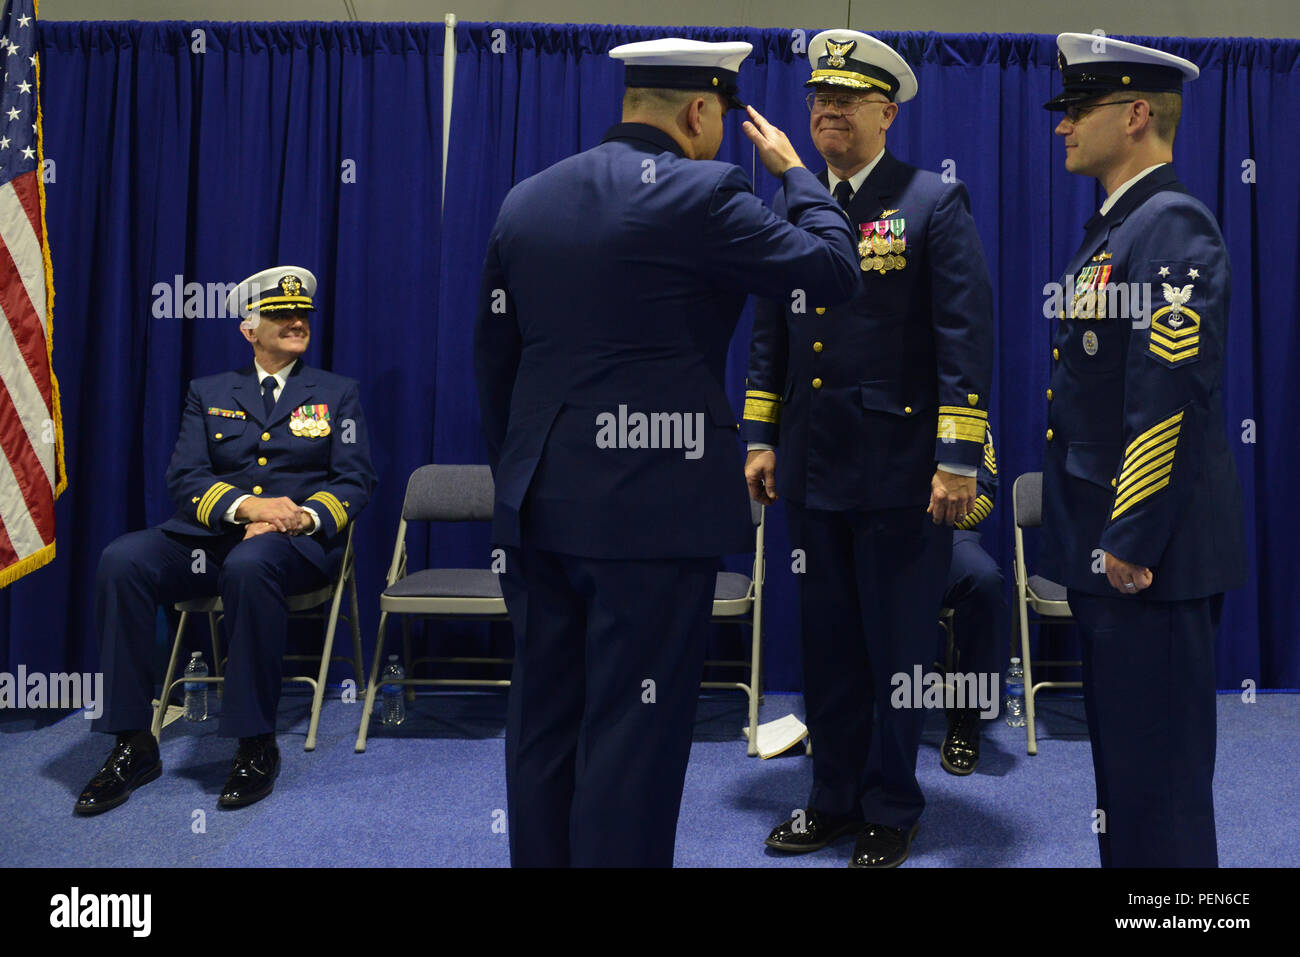 Master Chief Petty Officer Charles Lindsey, former command master chief for the Coast Guard 13th District, salutes Rear Adm. Richard Gromlich, commander, Coast Guard 13th District, as Lindsey transfers command authority to Master Chief Petty Officer Sean McPhilamy at a change-of-watch ceremony at Coast Guard Base Seattle Dec. 18, 2015. As the command master chief, McPhilamy will serve as the senior enlisted advisor to the 13th District commander for all Coast Guard missions in the Pacific Northwest region of Washington, Oregon, Idaho and Montana. (U.S. Coast Guard photo by Seaman Sarah Wilson) - Stock Image